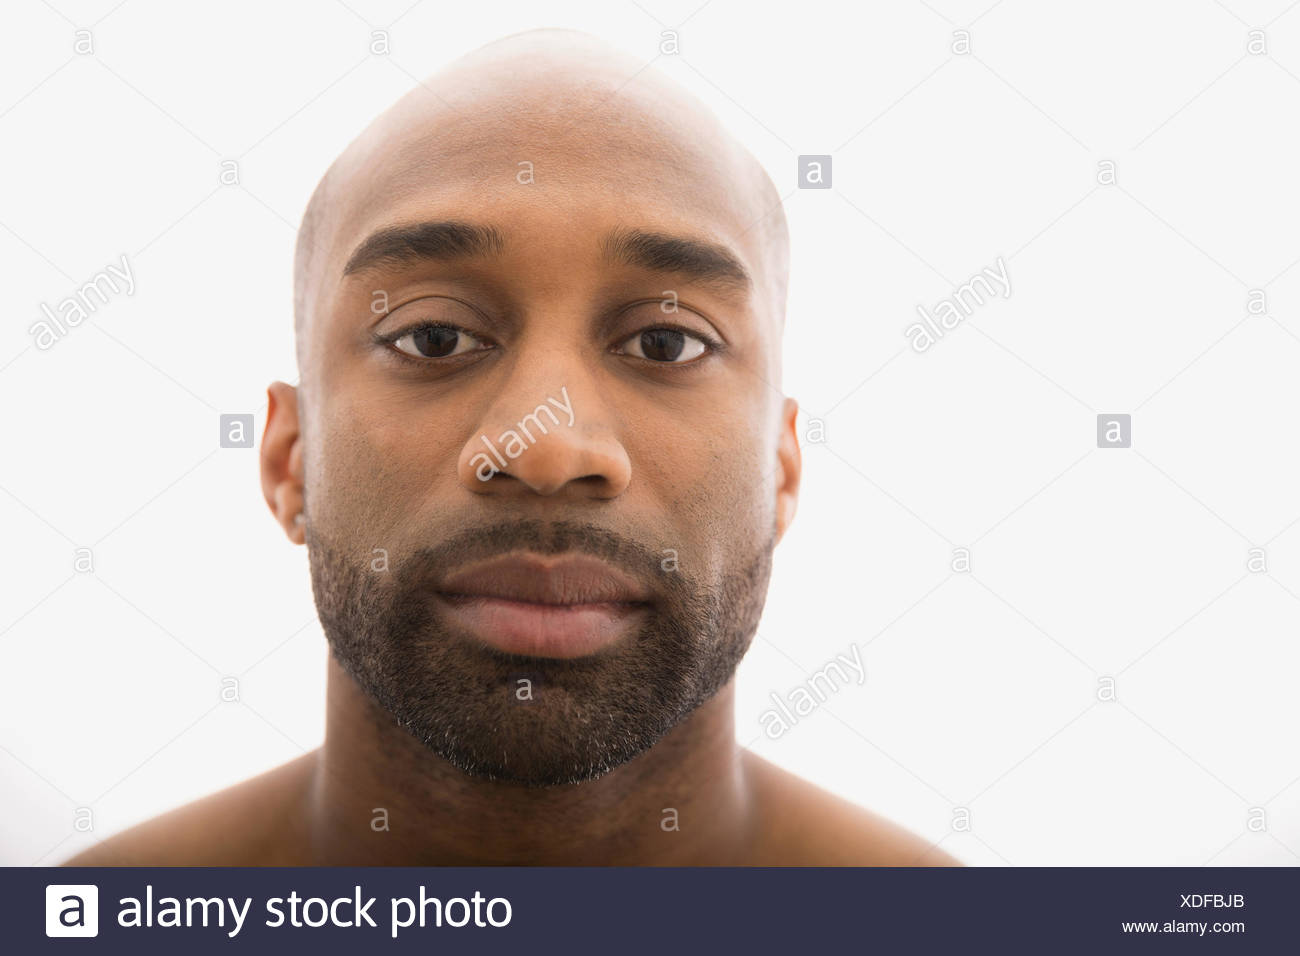 Close up portrait of serious man with beard Photo Stock